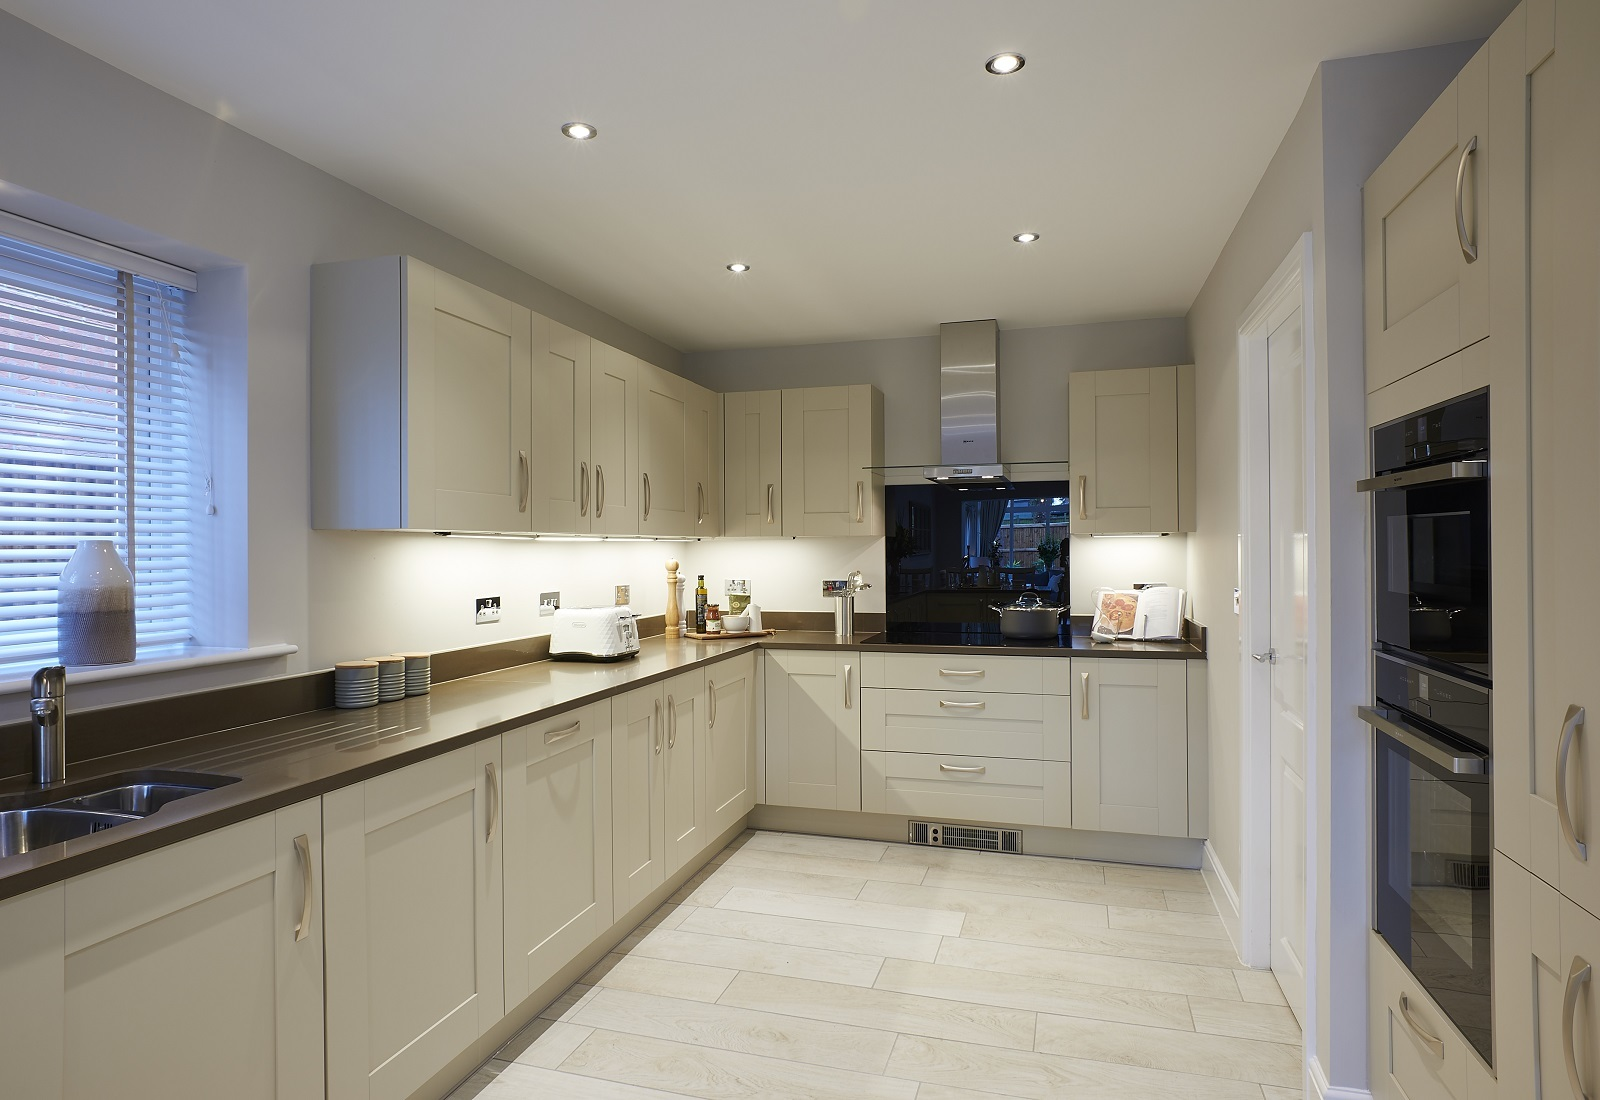 BIG: The kitchen at the property on Stonecross Meadows. Picture: Zoopla